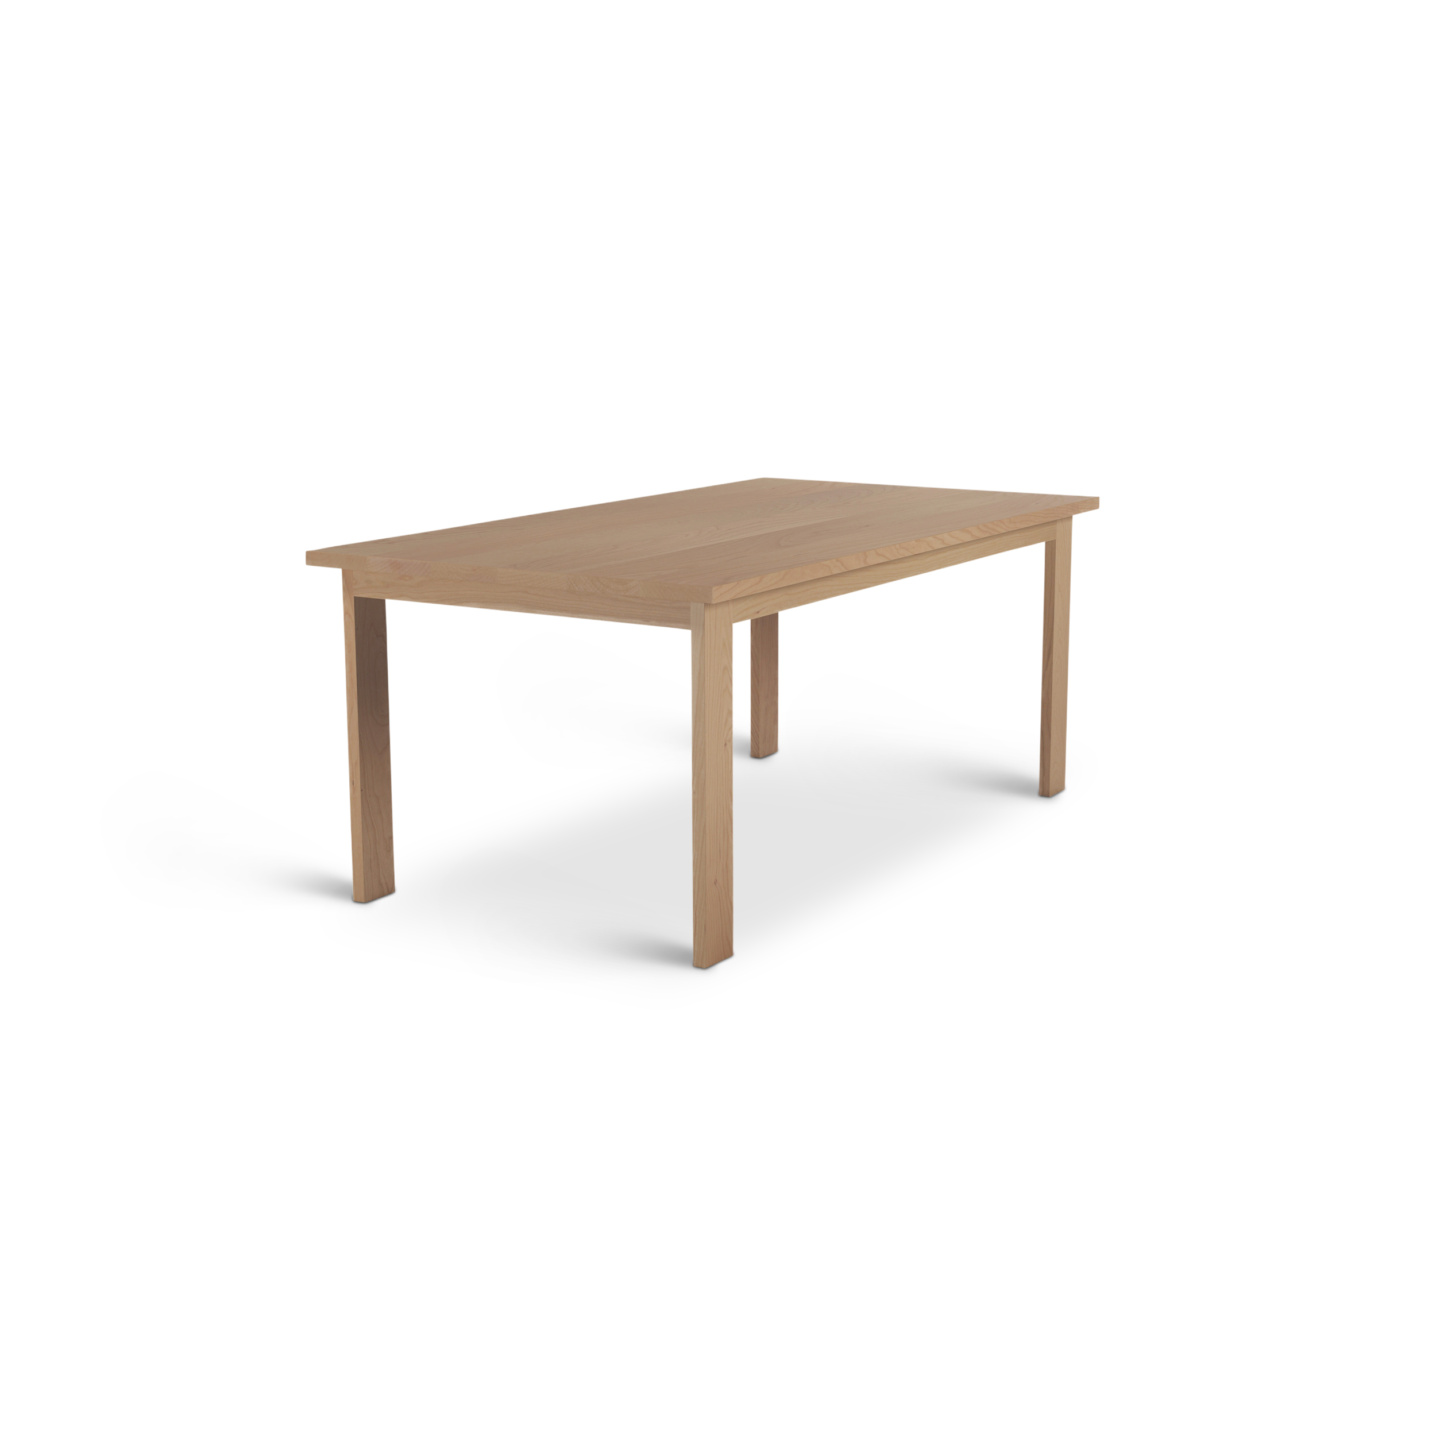 Simple cherry Table